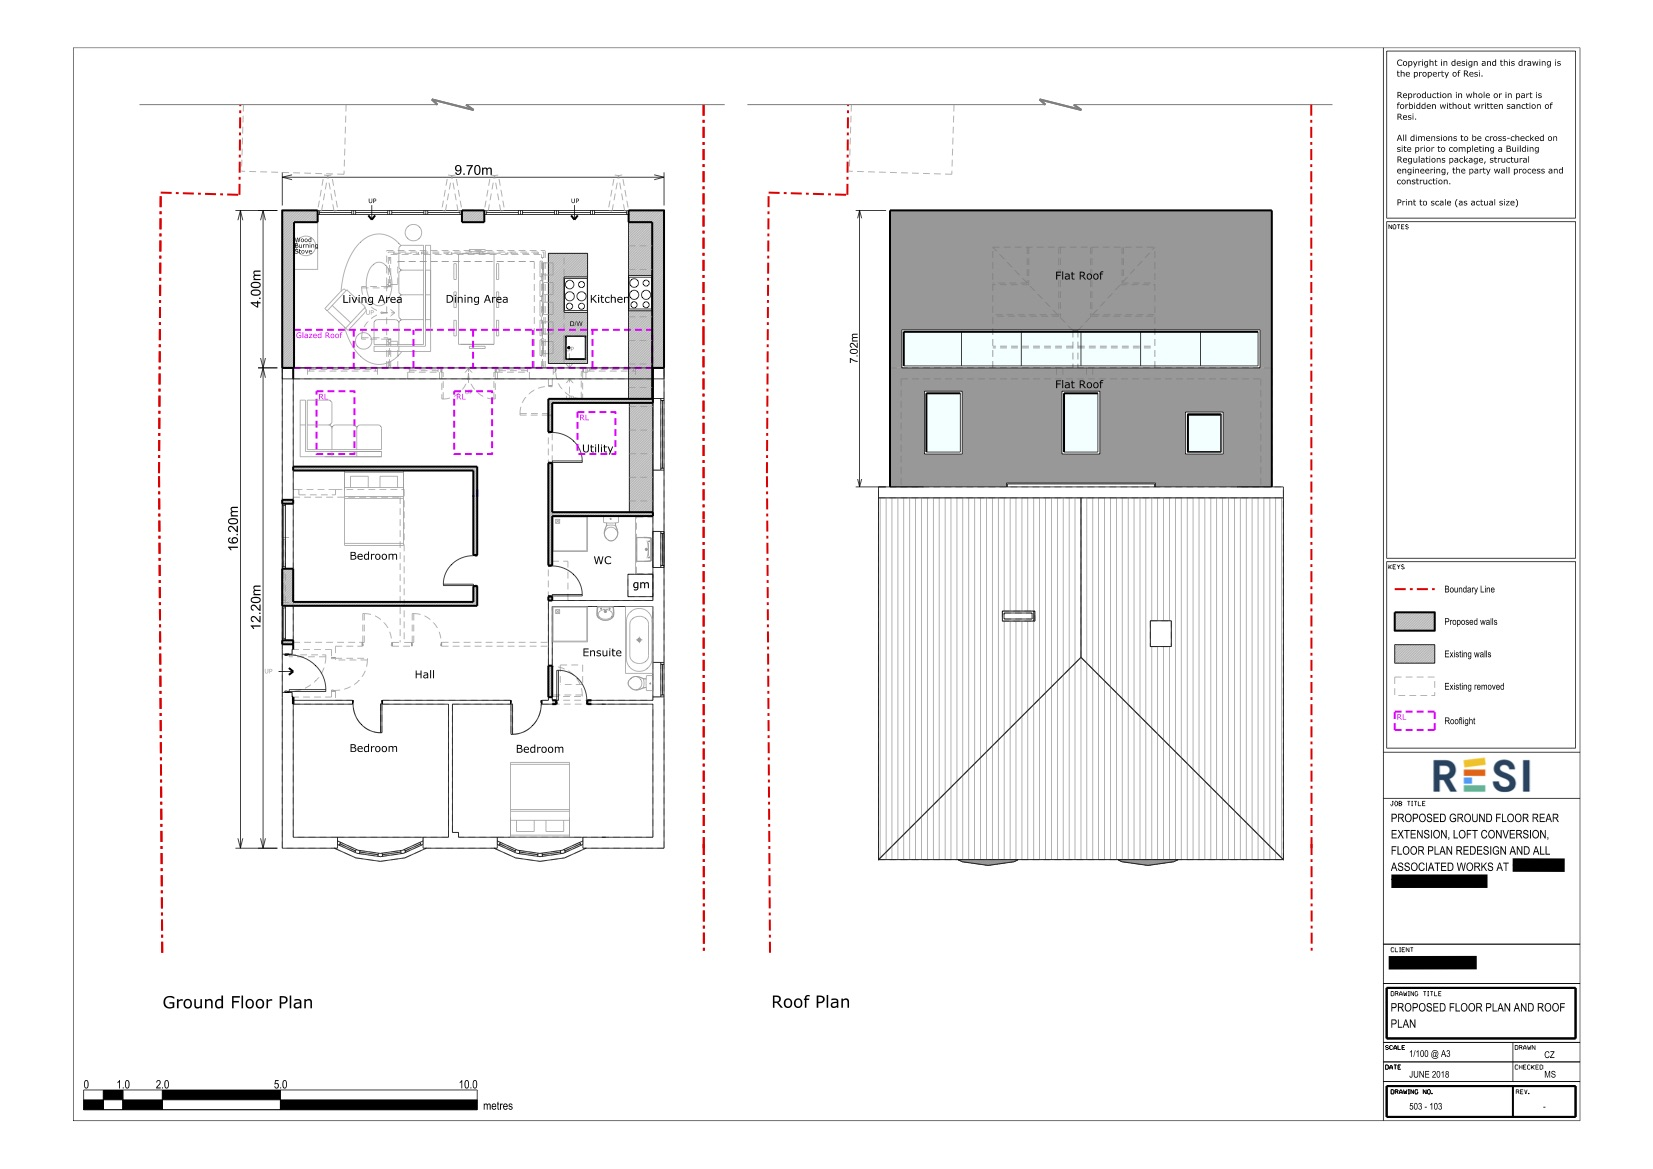 Architectural drawings 17   ground floor and roof plan